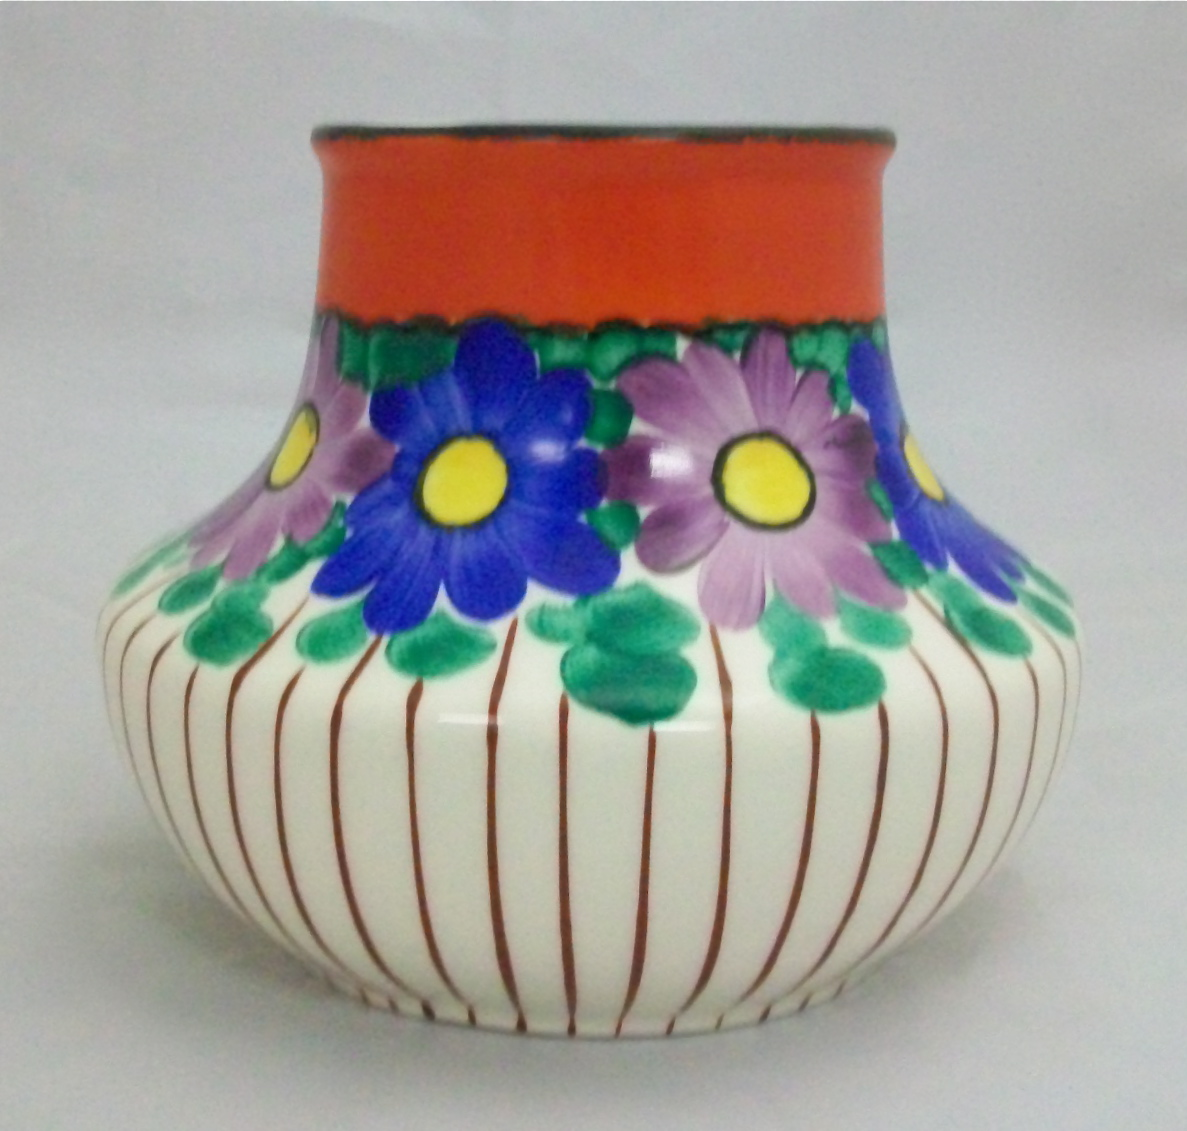 Czech pottery flower vase for sale antiques classifieds this czechoslovakian vase is crazed and features hand painted green leaves surrounding blue and purple flowers with yellow centers reviewsmspy